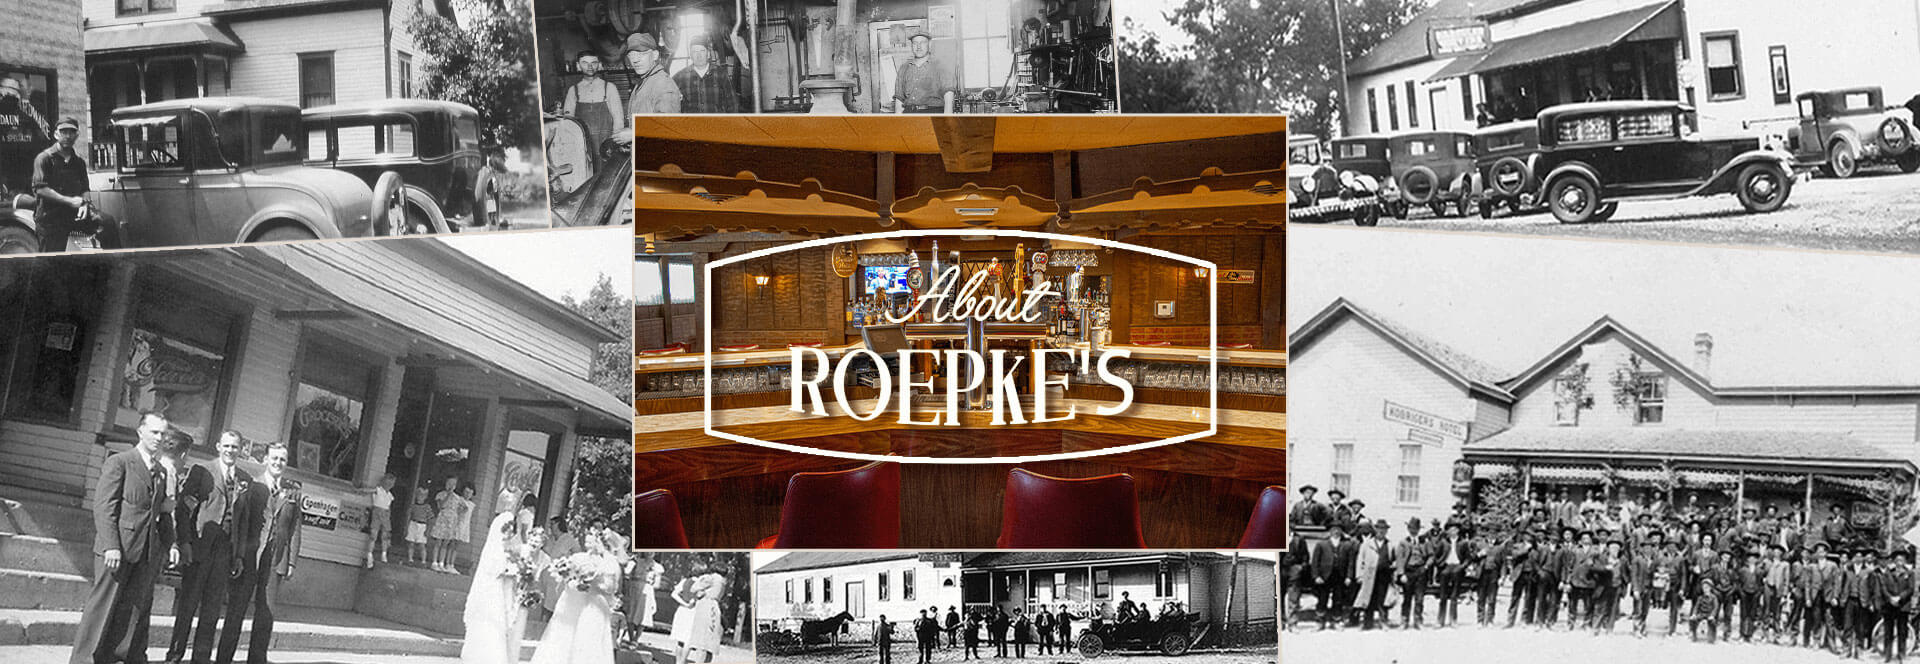 roepkes-village-inn-supper-club_0004_about